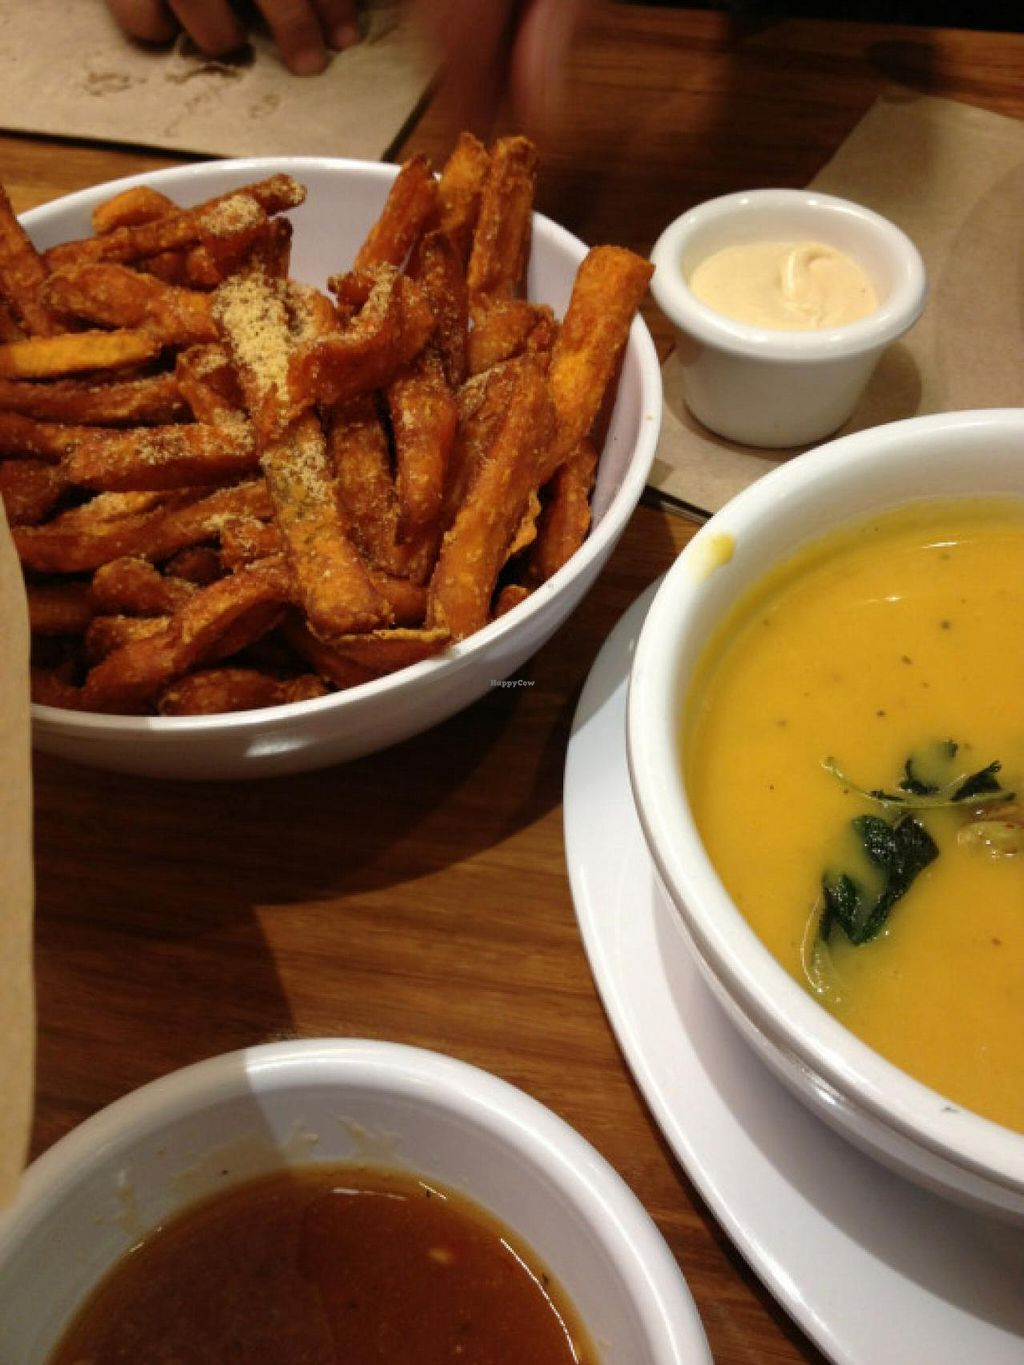 "Photo of Veggie Grill  by <a href=""/members/profile/wavesofjoy"">wavesofjoy</a> <br/>the sweet potato fries and butternut squash soup make delicious sides <br/> June 1, 2015  - <a href='/contact/abuse/image/54764/104454'>Report</a>"